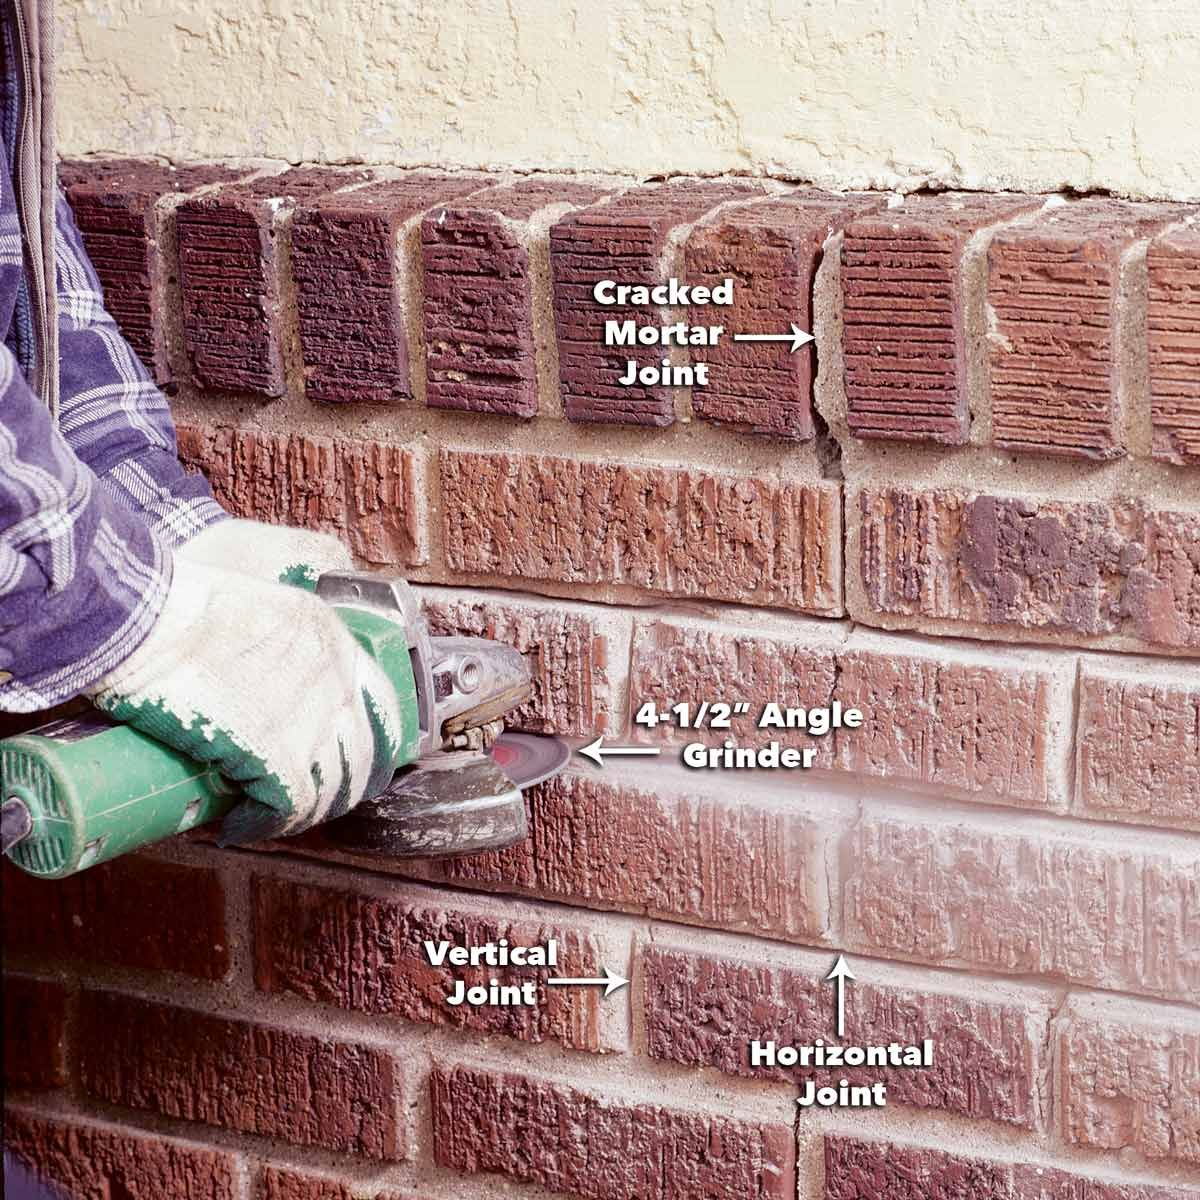 How To Repair Mortar Joints Brick Repair Mortar Repair Masonry Work